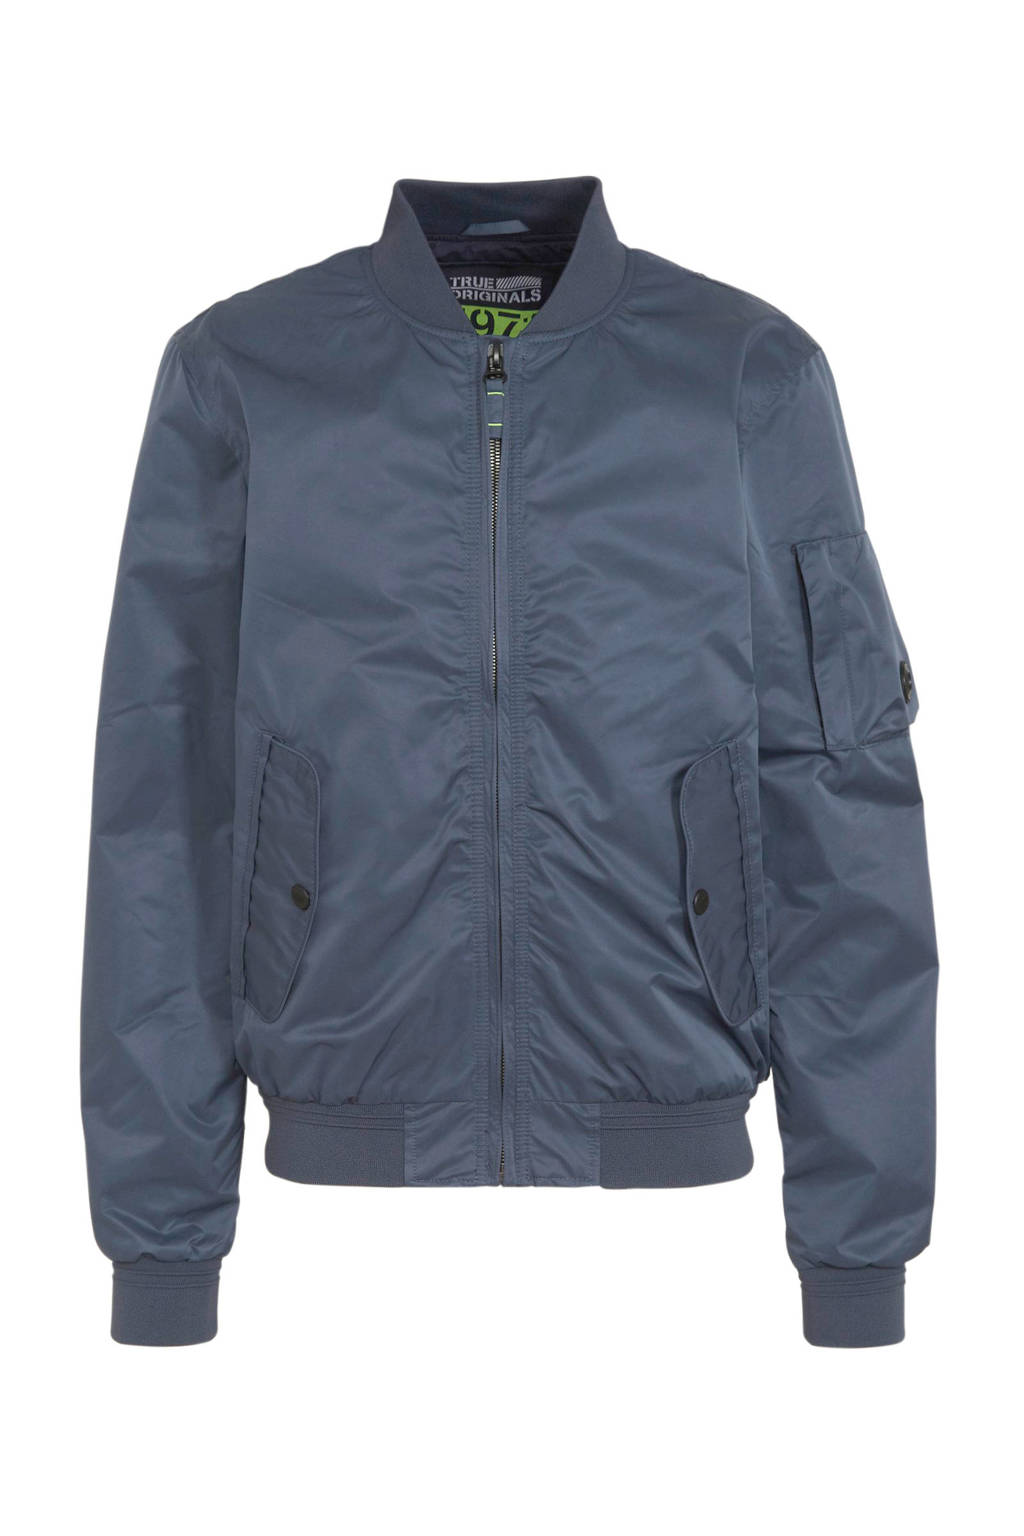 C&A Angelo Litrico zomerjas donkerblauw, Donkerblauw